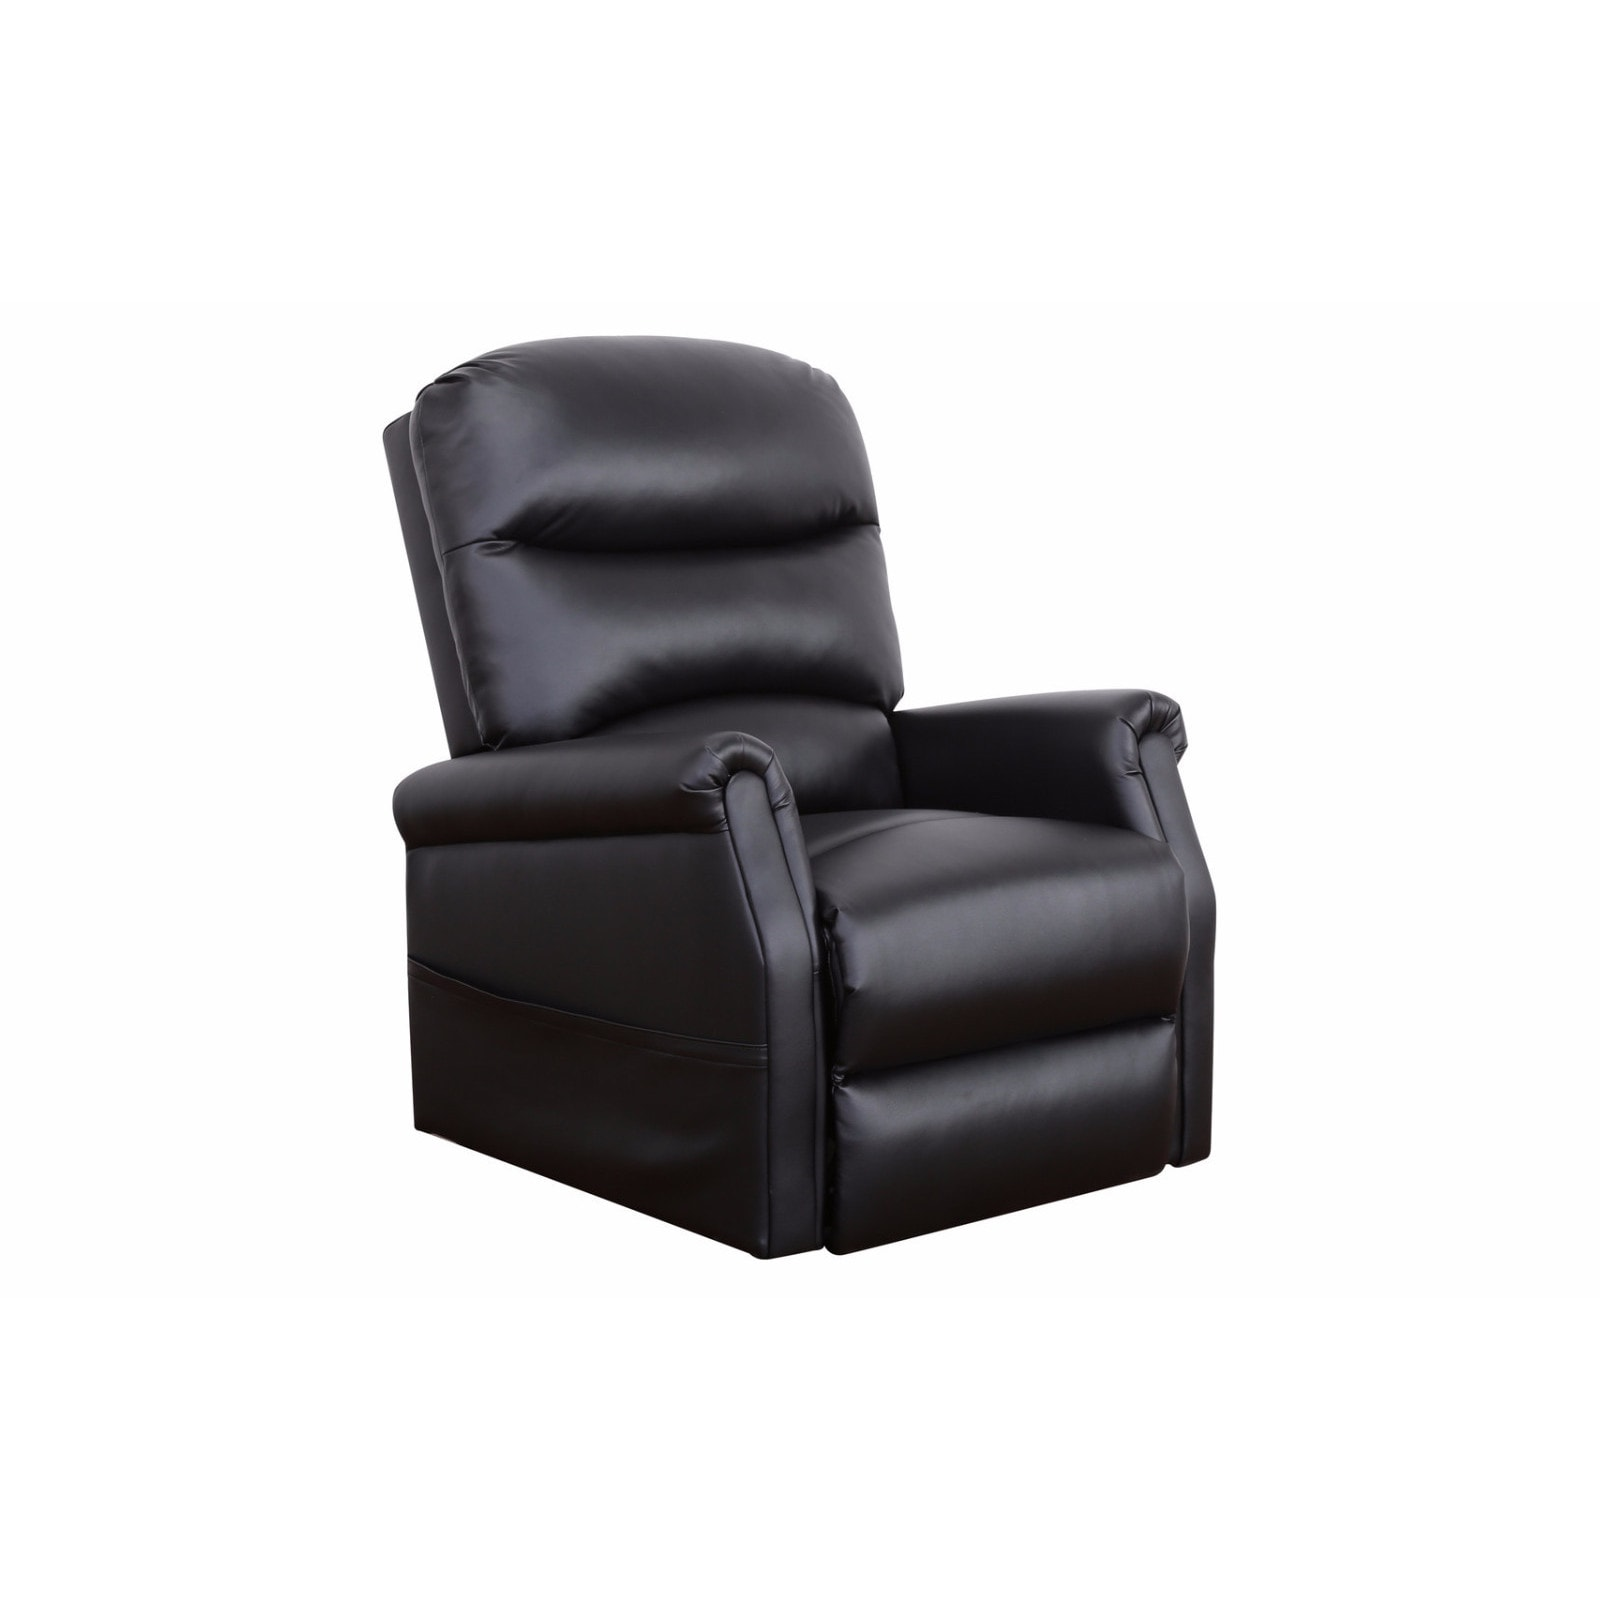 Leather Lift Chairs Classic Plush Bonded Leather Power Lift Recliner Living